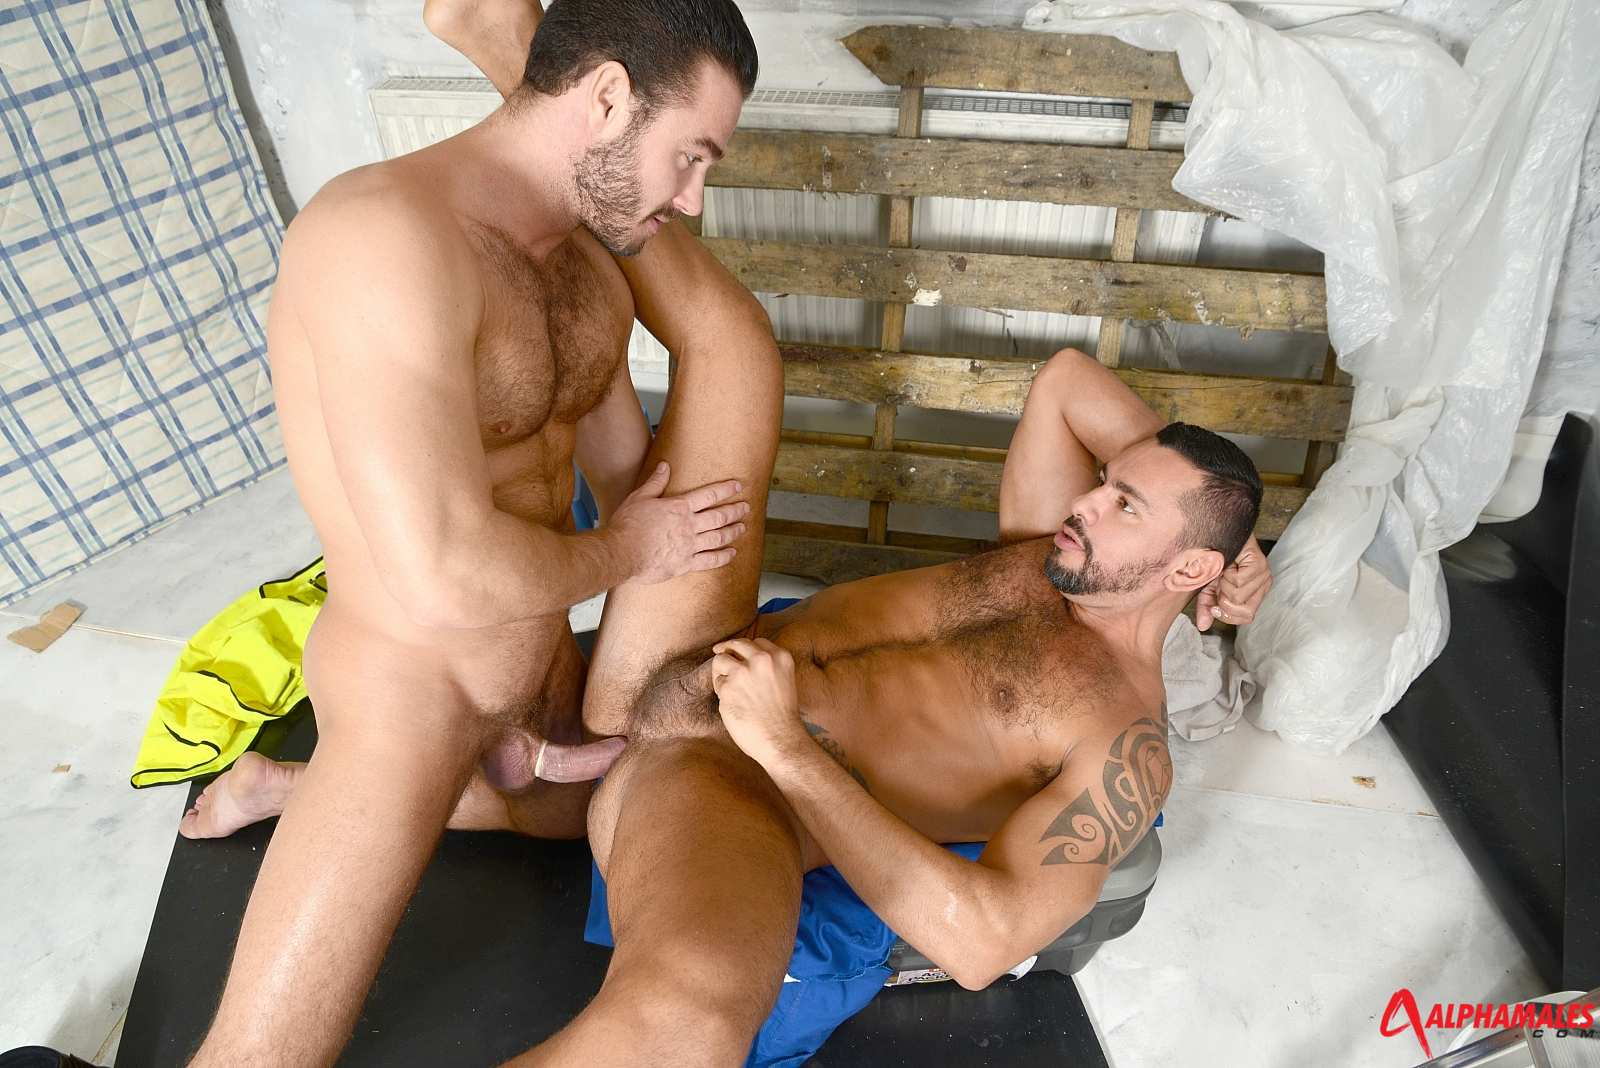 AlphaMales-Jessy-Ares-and-Tiko-Masculine-Men-Fucking-Amateur-Gay-Porn-05 Amateur Masculine Blue Collar Muscle Hairy Men Fucking